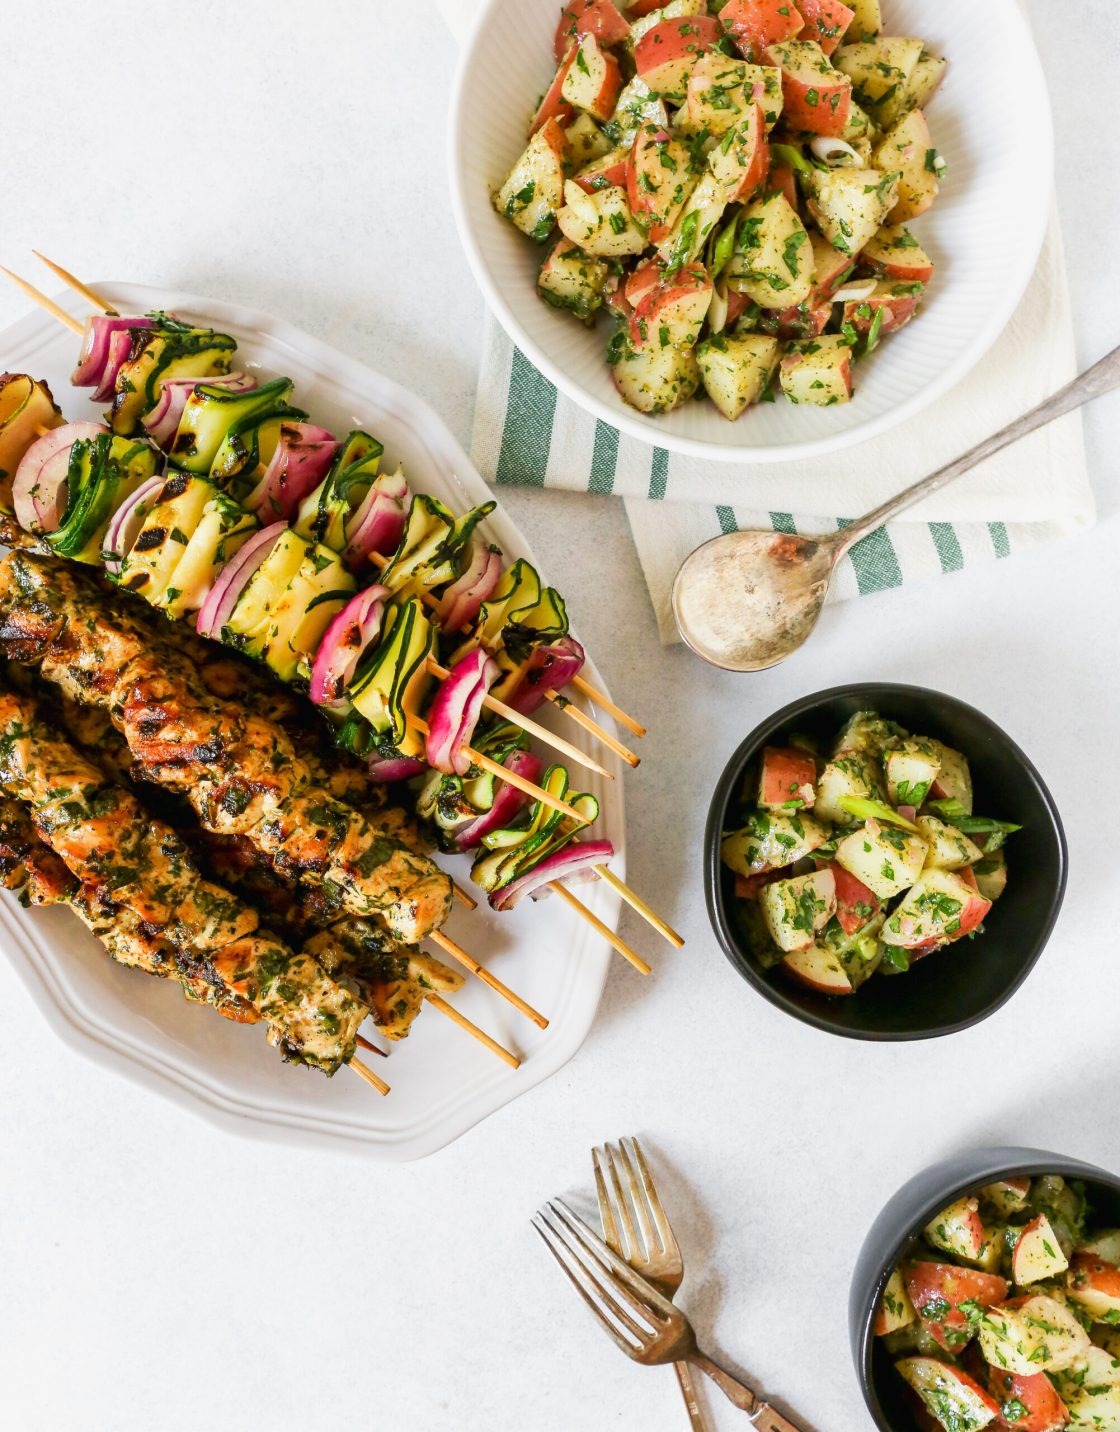 White platter filled with grilled chicken and vegetable skewers, red potato salad, and individual bowls of potato salad on a while background. Summer dinner photography